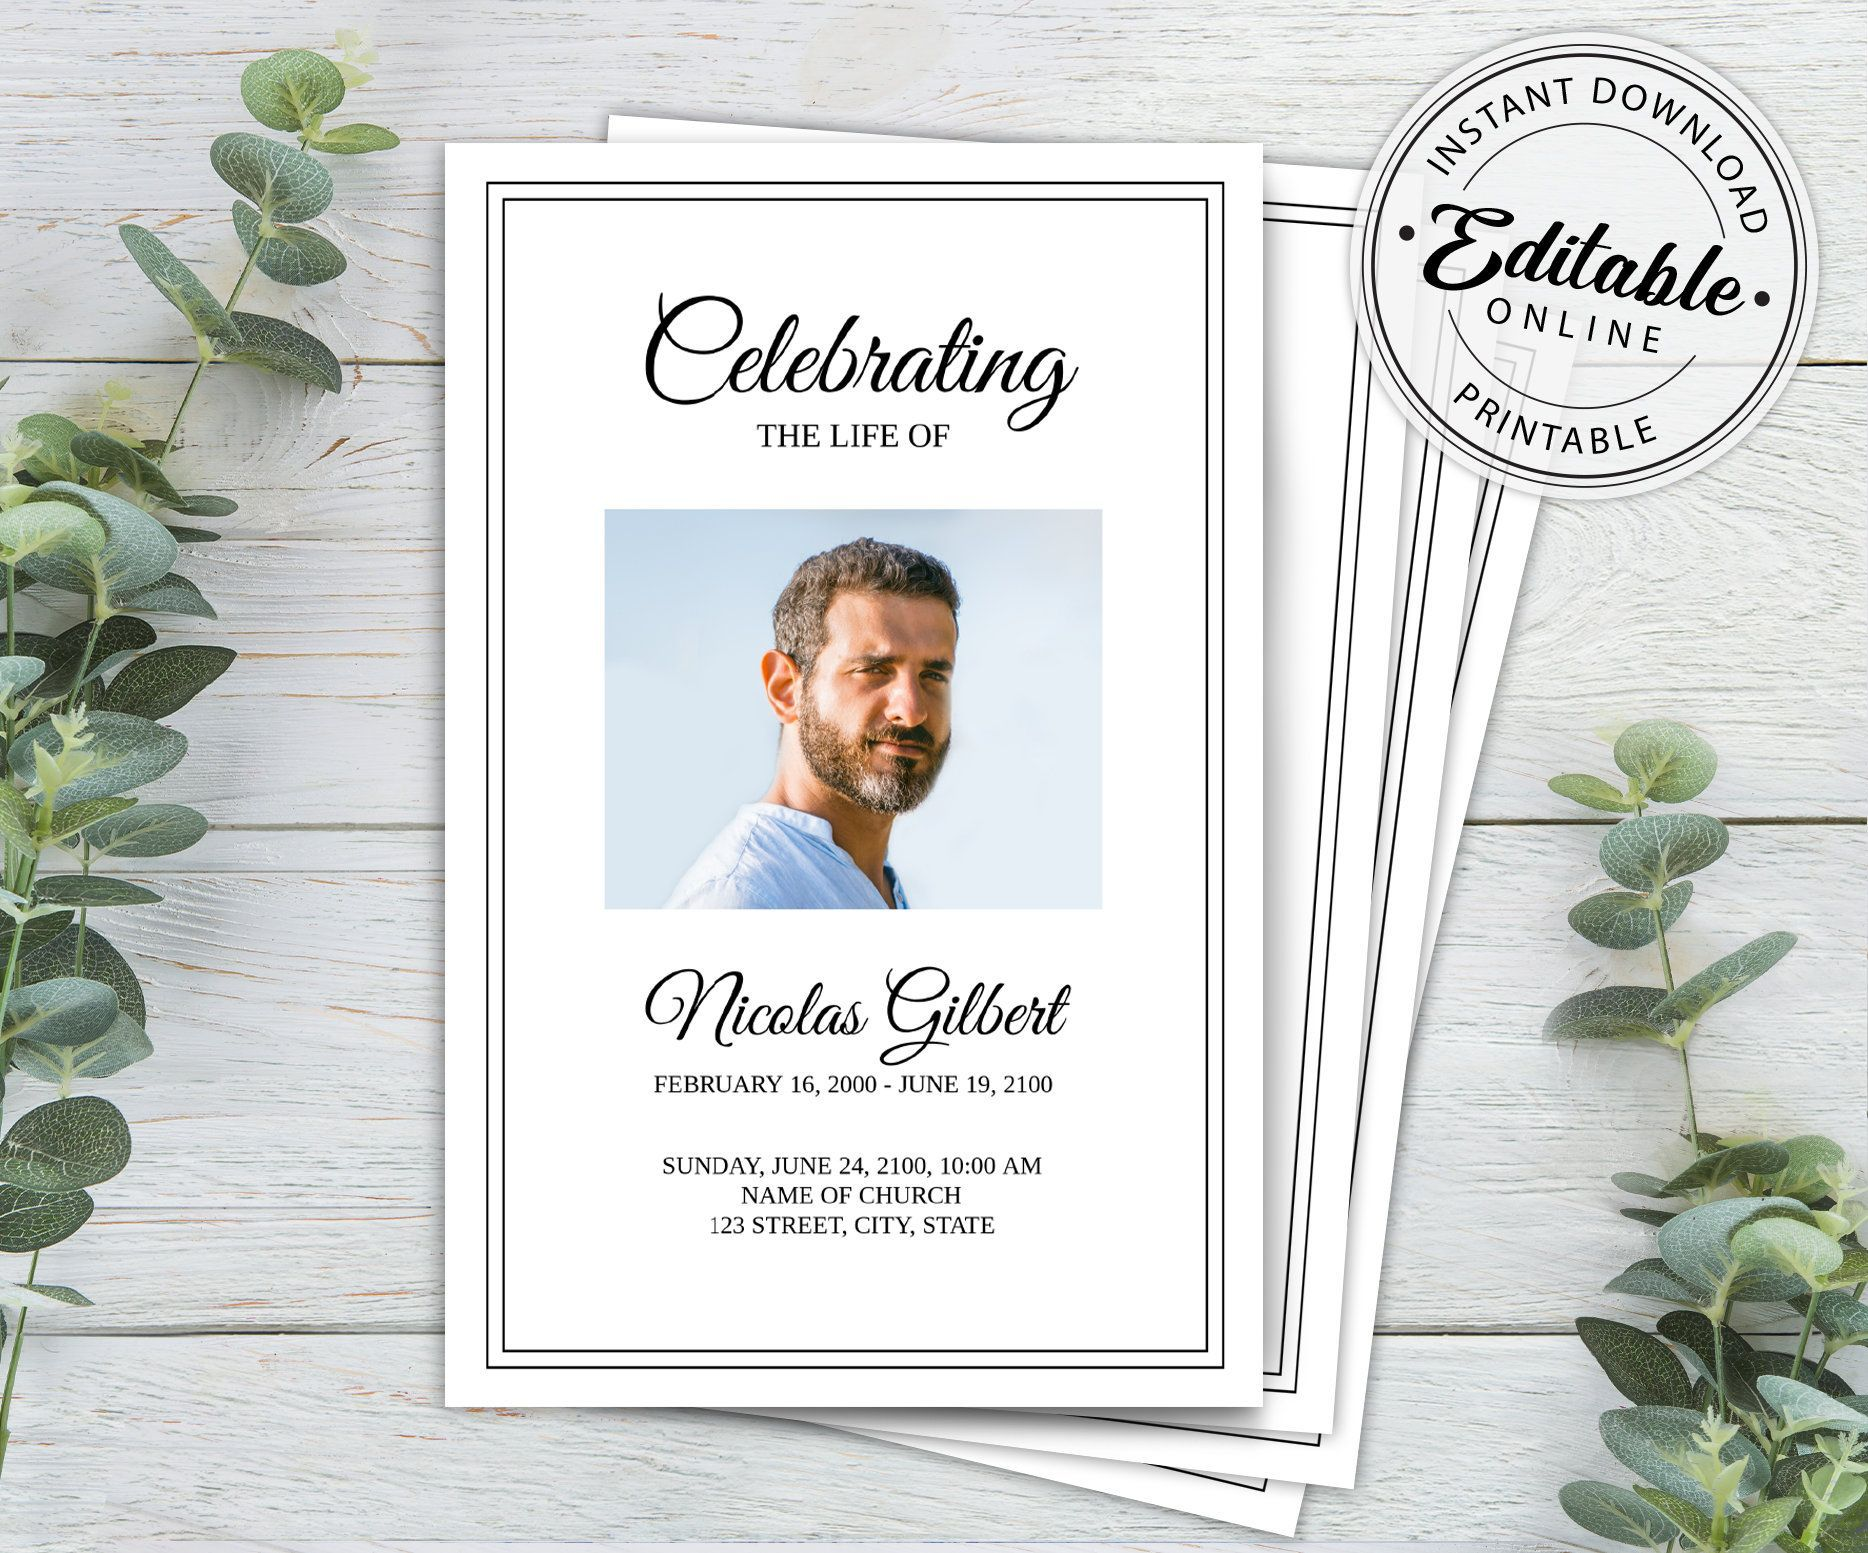 003 Incredible Free Editable Celebration Of Life Program Template High Def Full